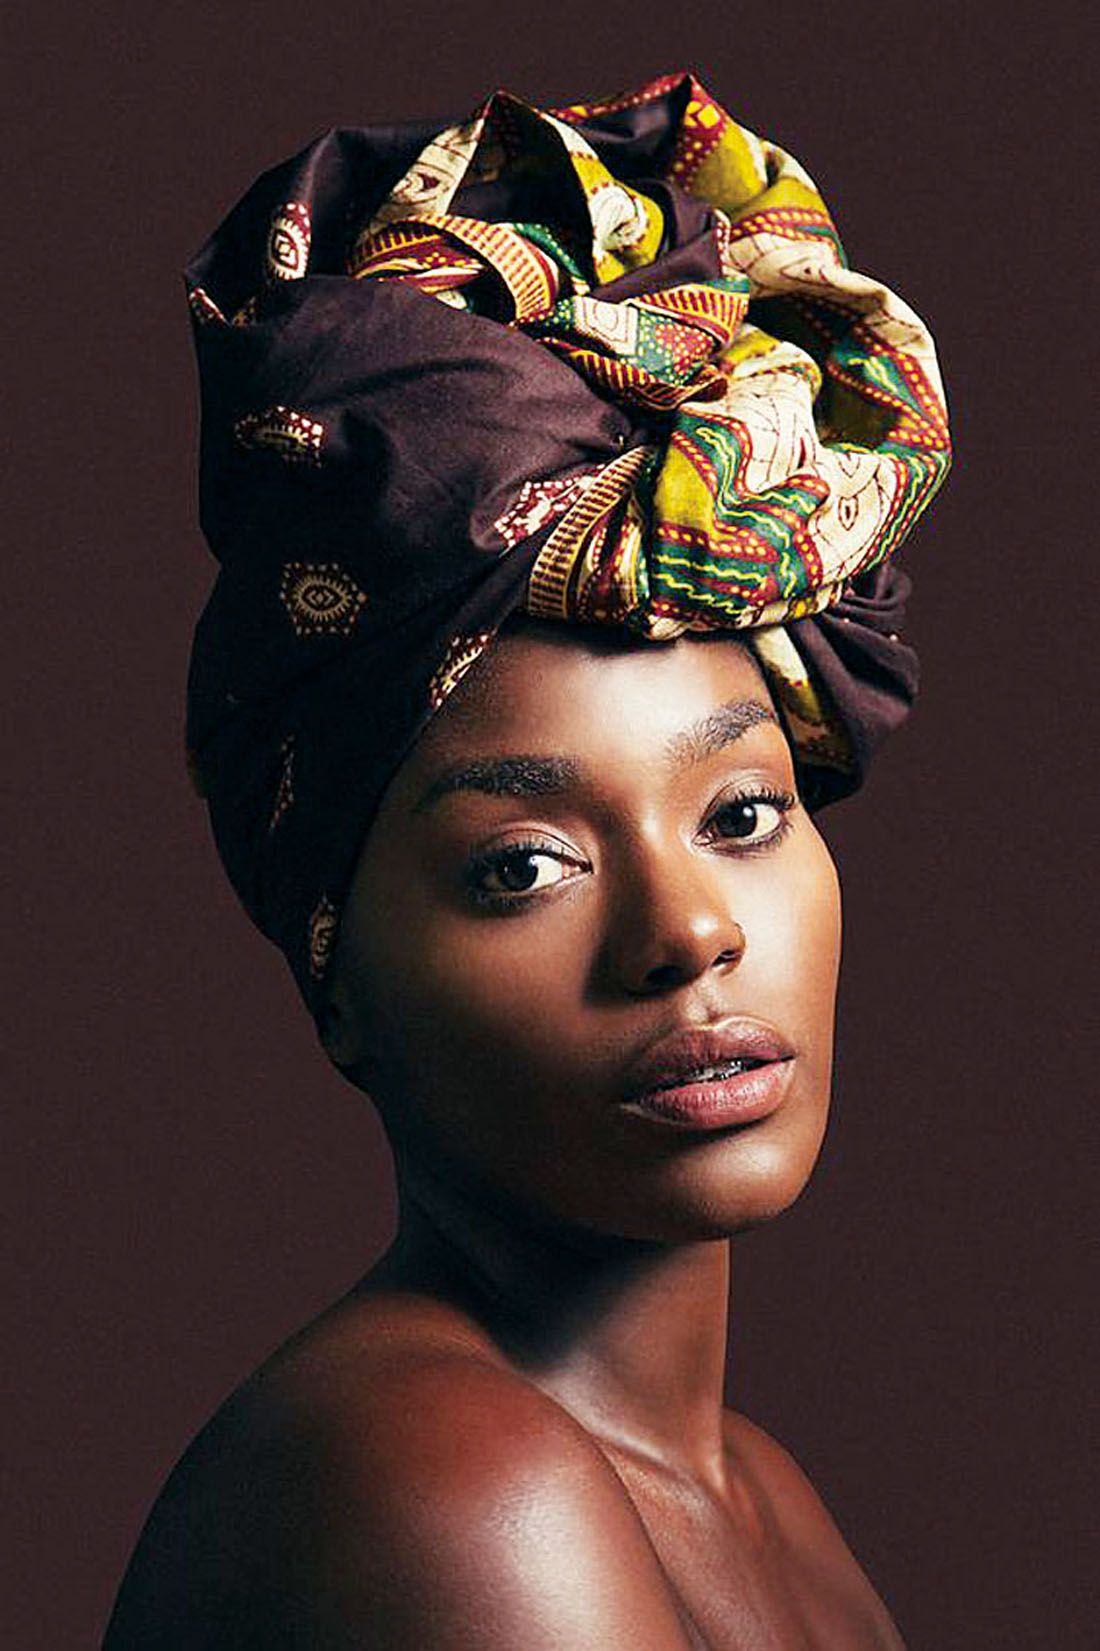 Coiffure Africaine Avec Foulard El Turbante Haitiano Y Colombiano Cover Up Pinterest